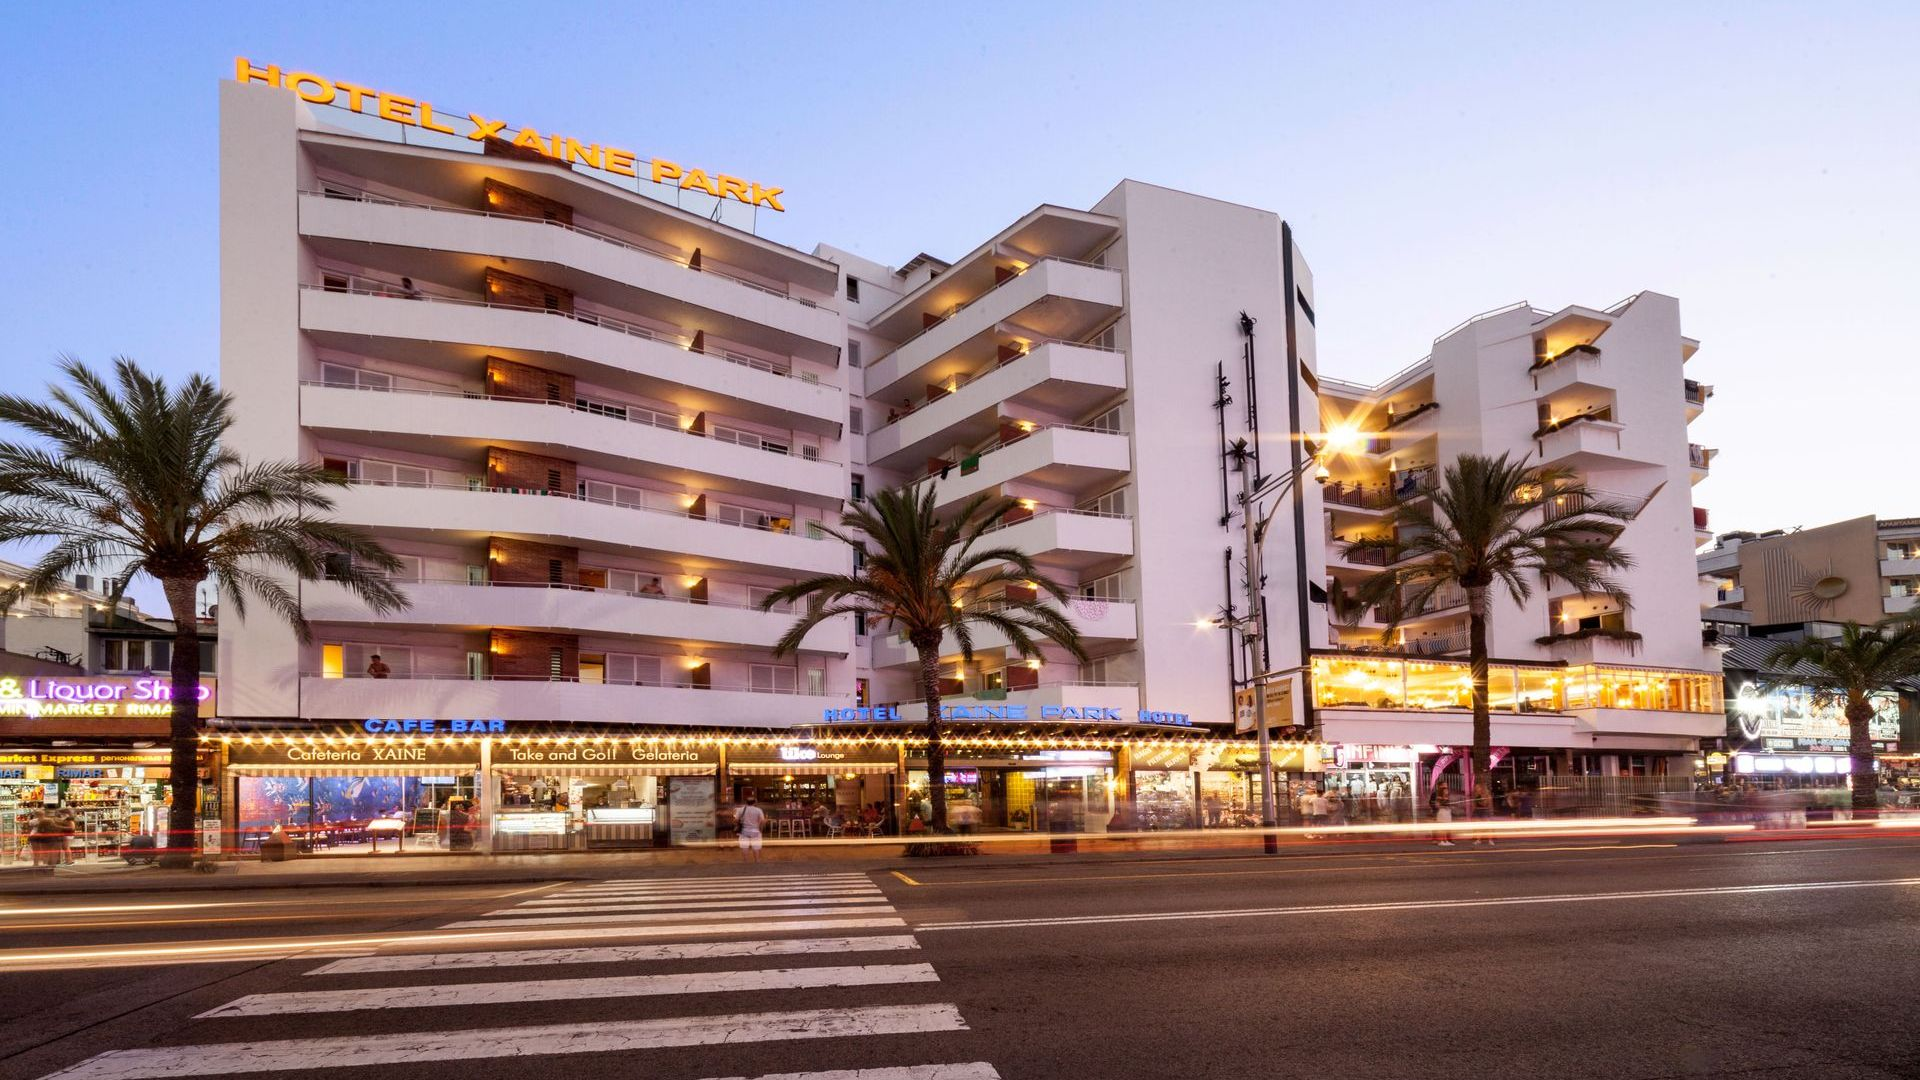 Stay in the city center, by the shopping and leisure are of Lloret